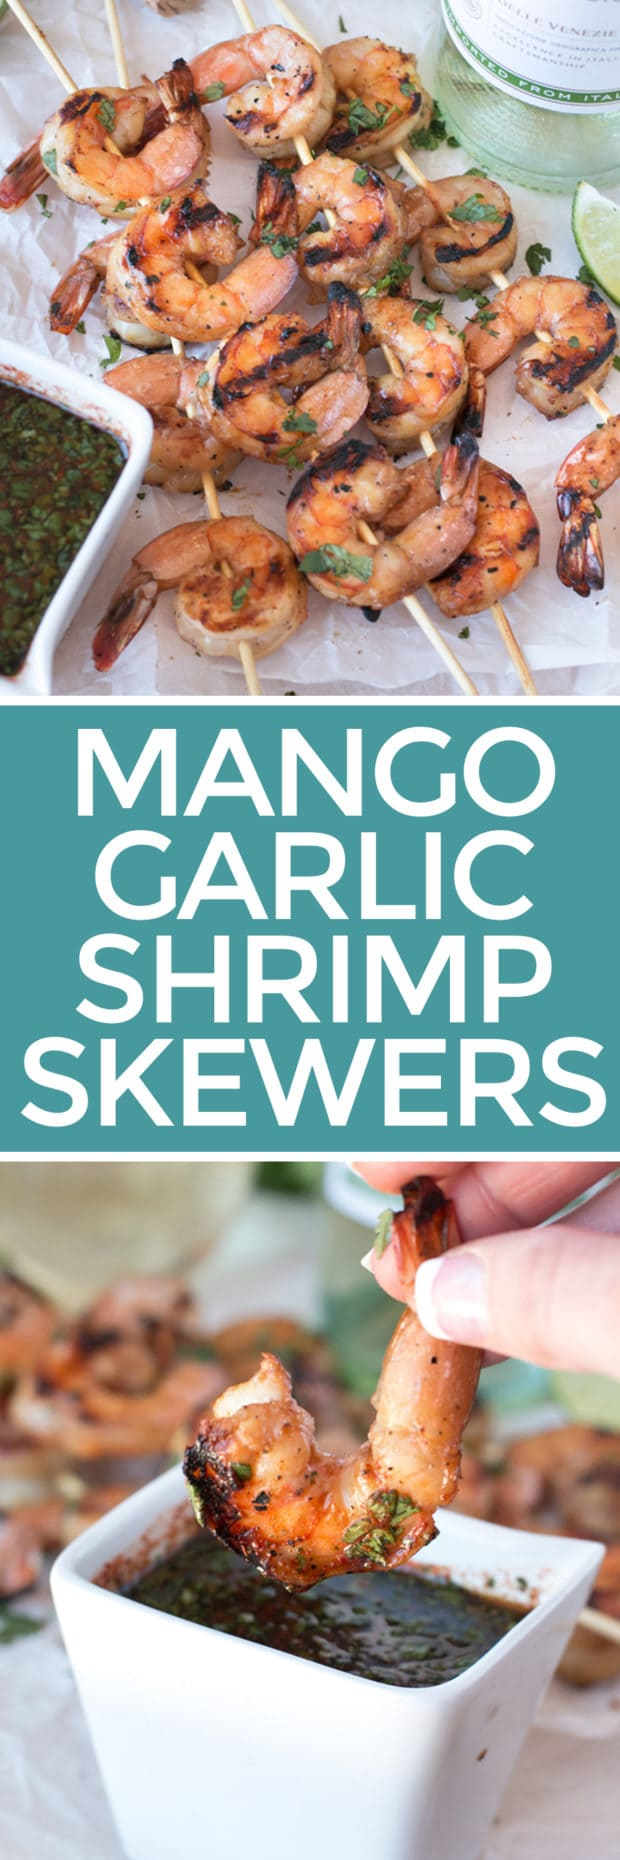 Mango Garlic Shrimp Skewers with Spicy Cilantro Dipping Sauce | cakenknife.com #21andup @CavitWines